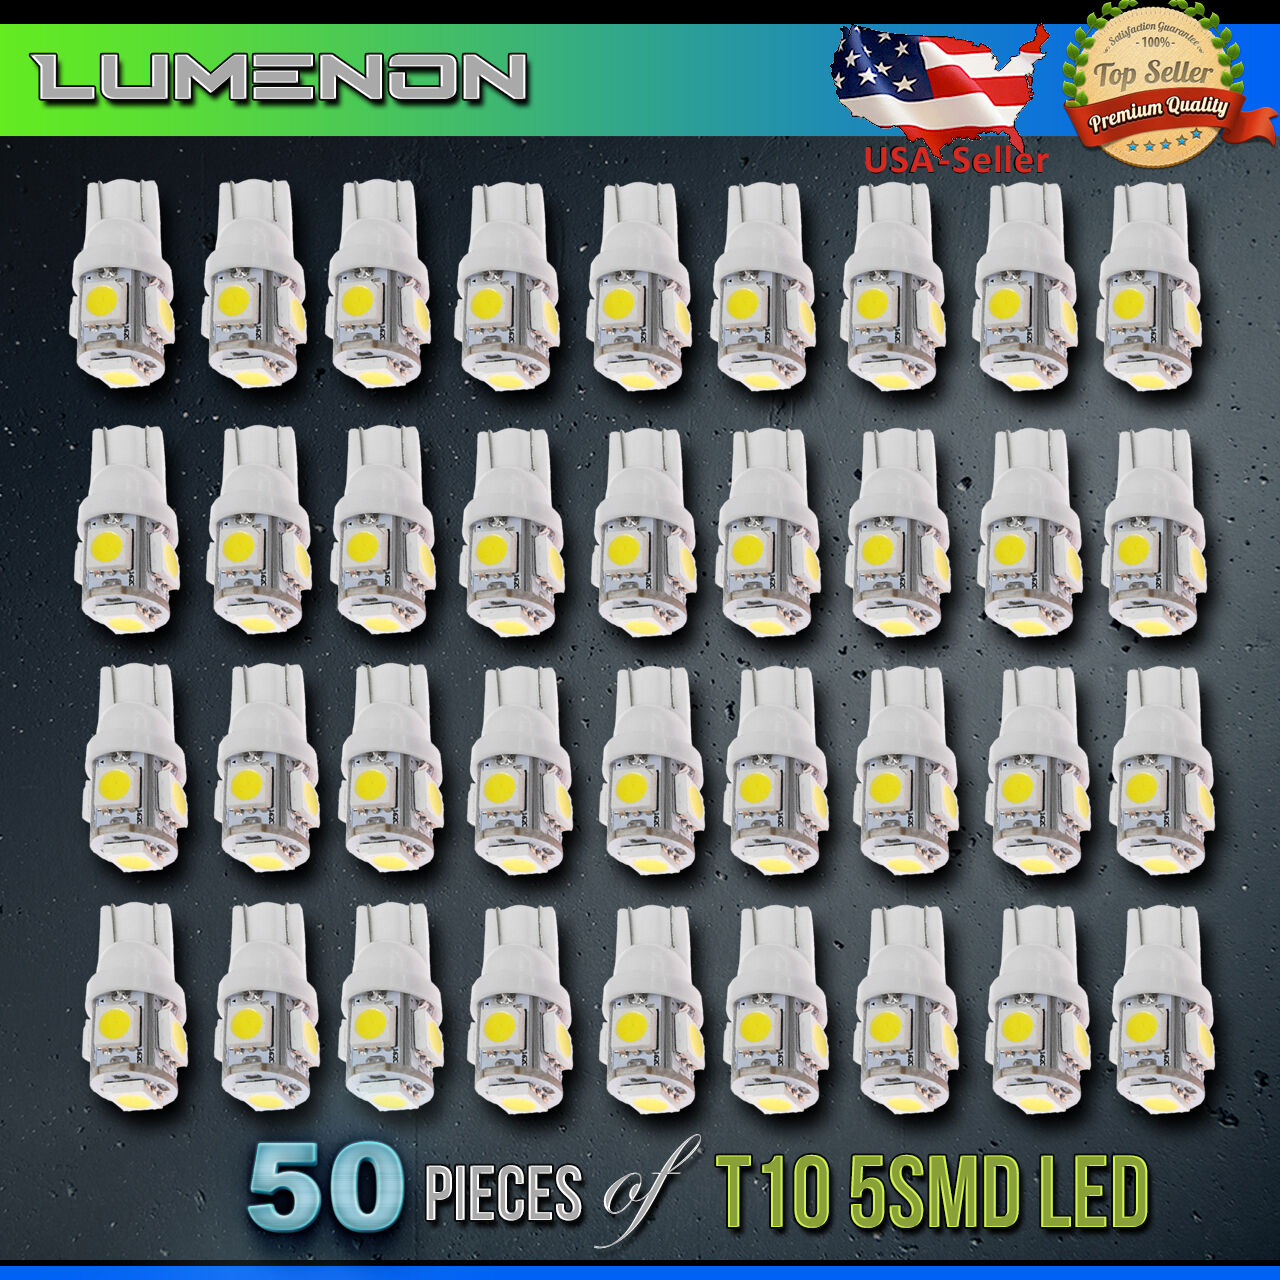 Led - T10 194 LED Wedge 5-SMD 50 Pcs 6k White 5050 Light bulbs W5W 2825 158 192 168